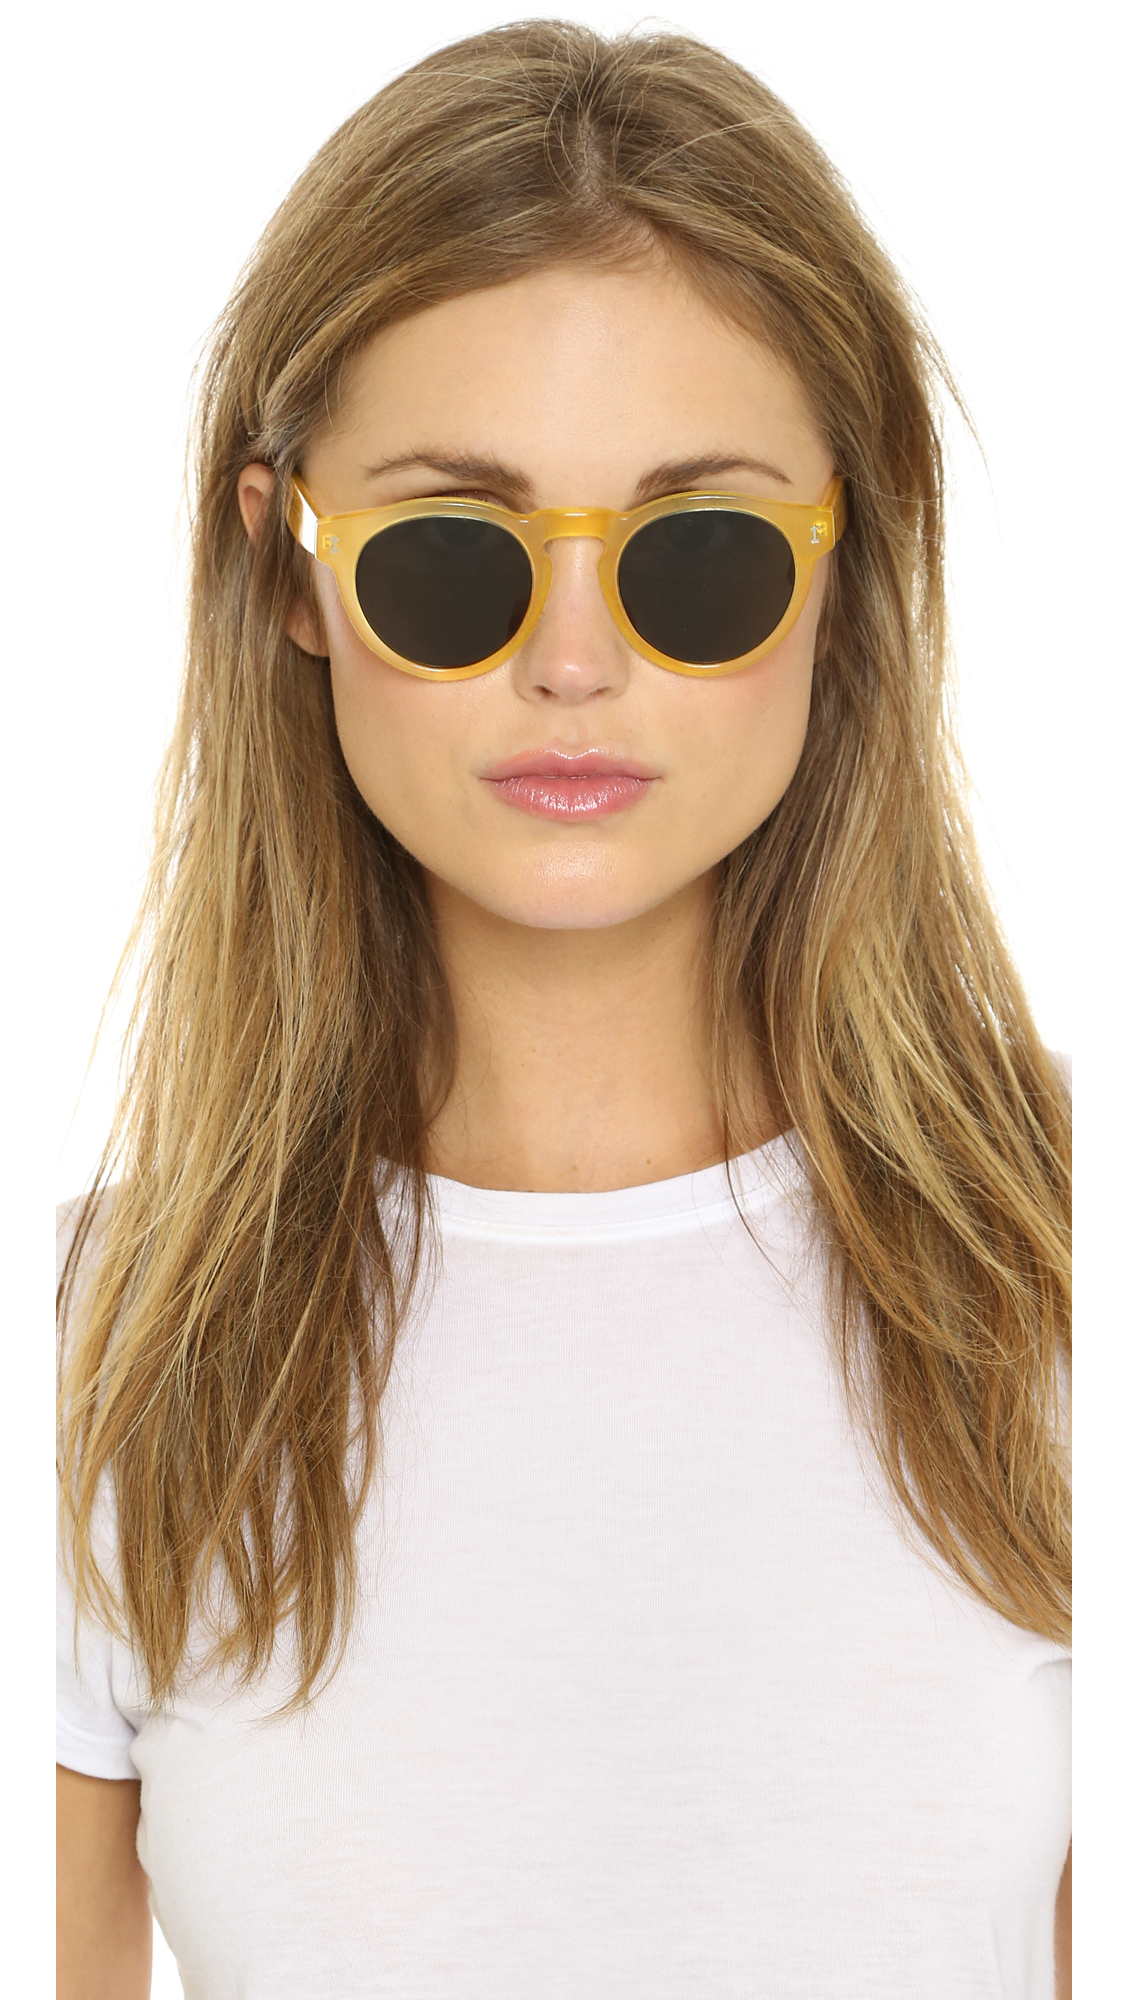 47848bc0a5d9 Illesteva Leonard Sunglasses - Blonde/black in Yellow - Lyst